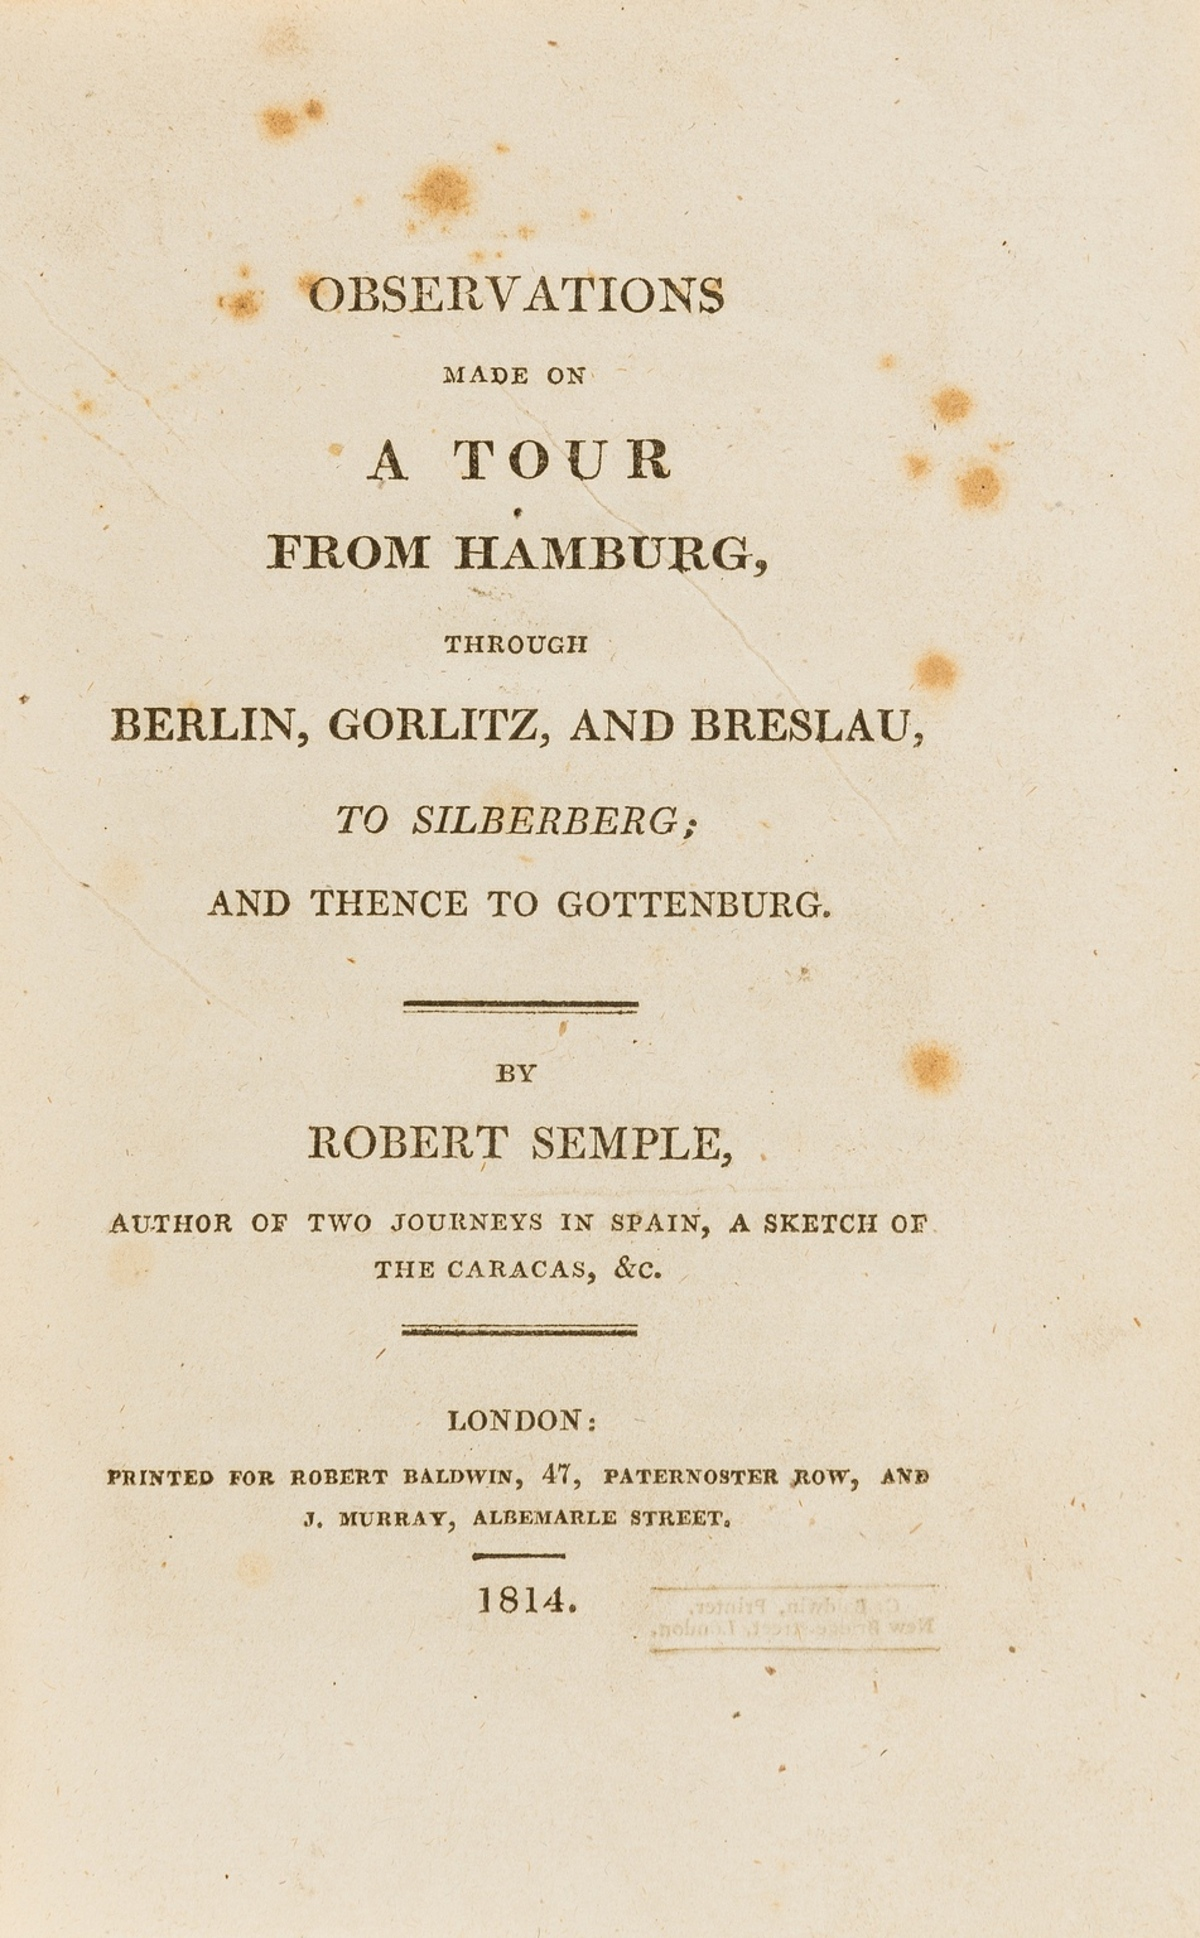 Germany.- Semple (Robert) Observations made on a Tour from Hamburg..., first edition, 1814.